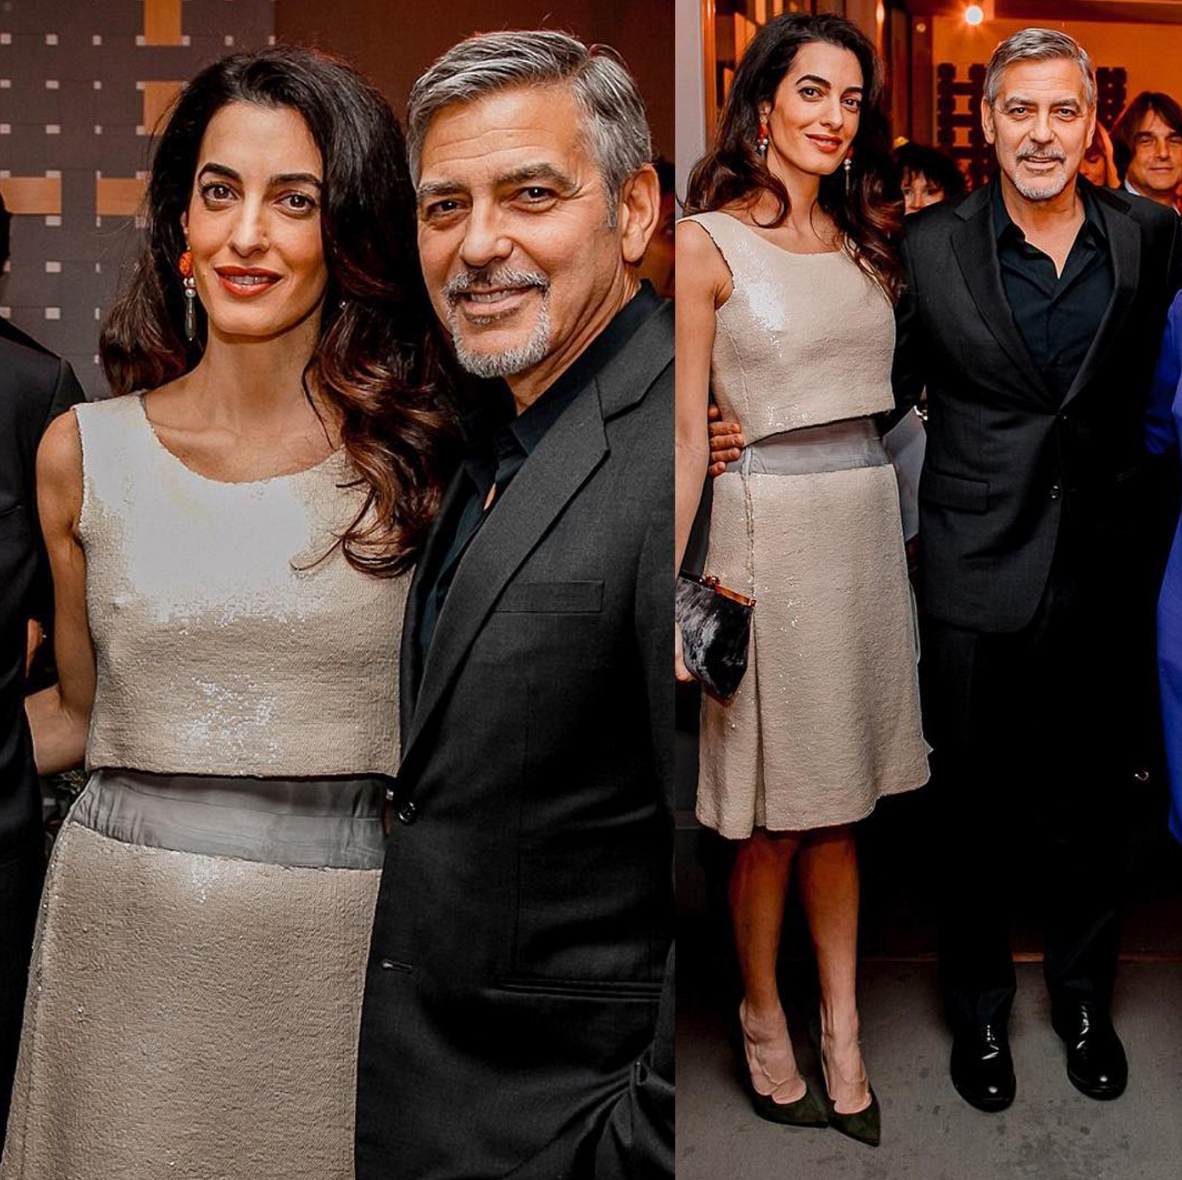 Amal Clooney: Defending the poor in clothes expensive enough